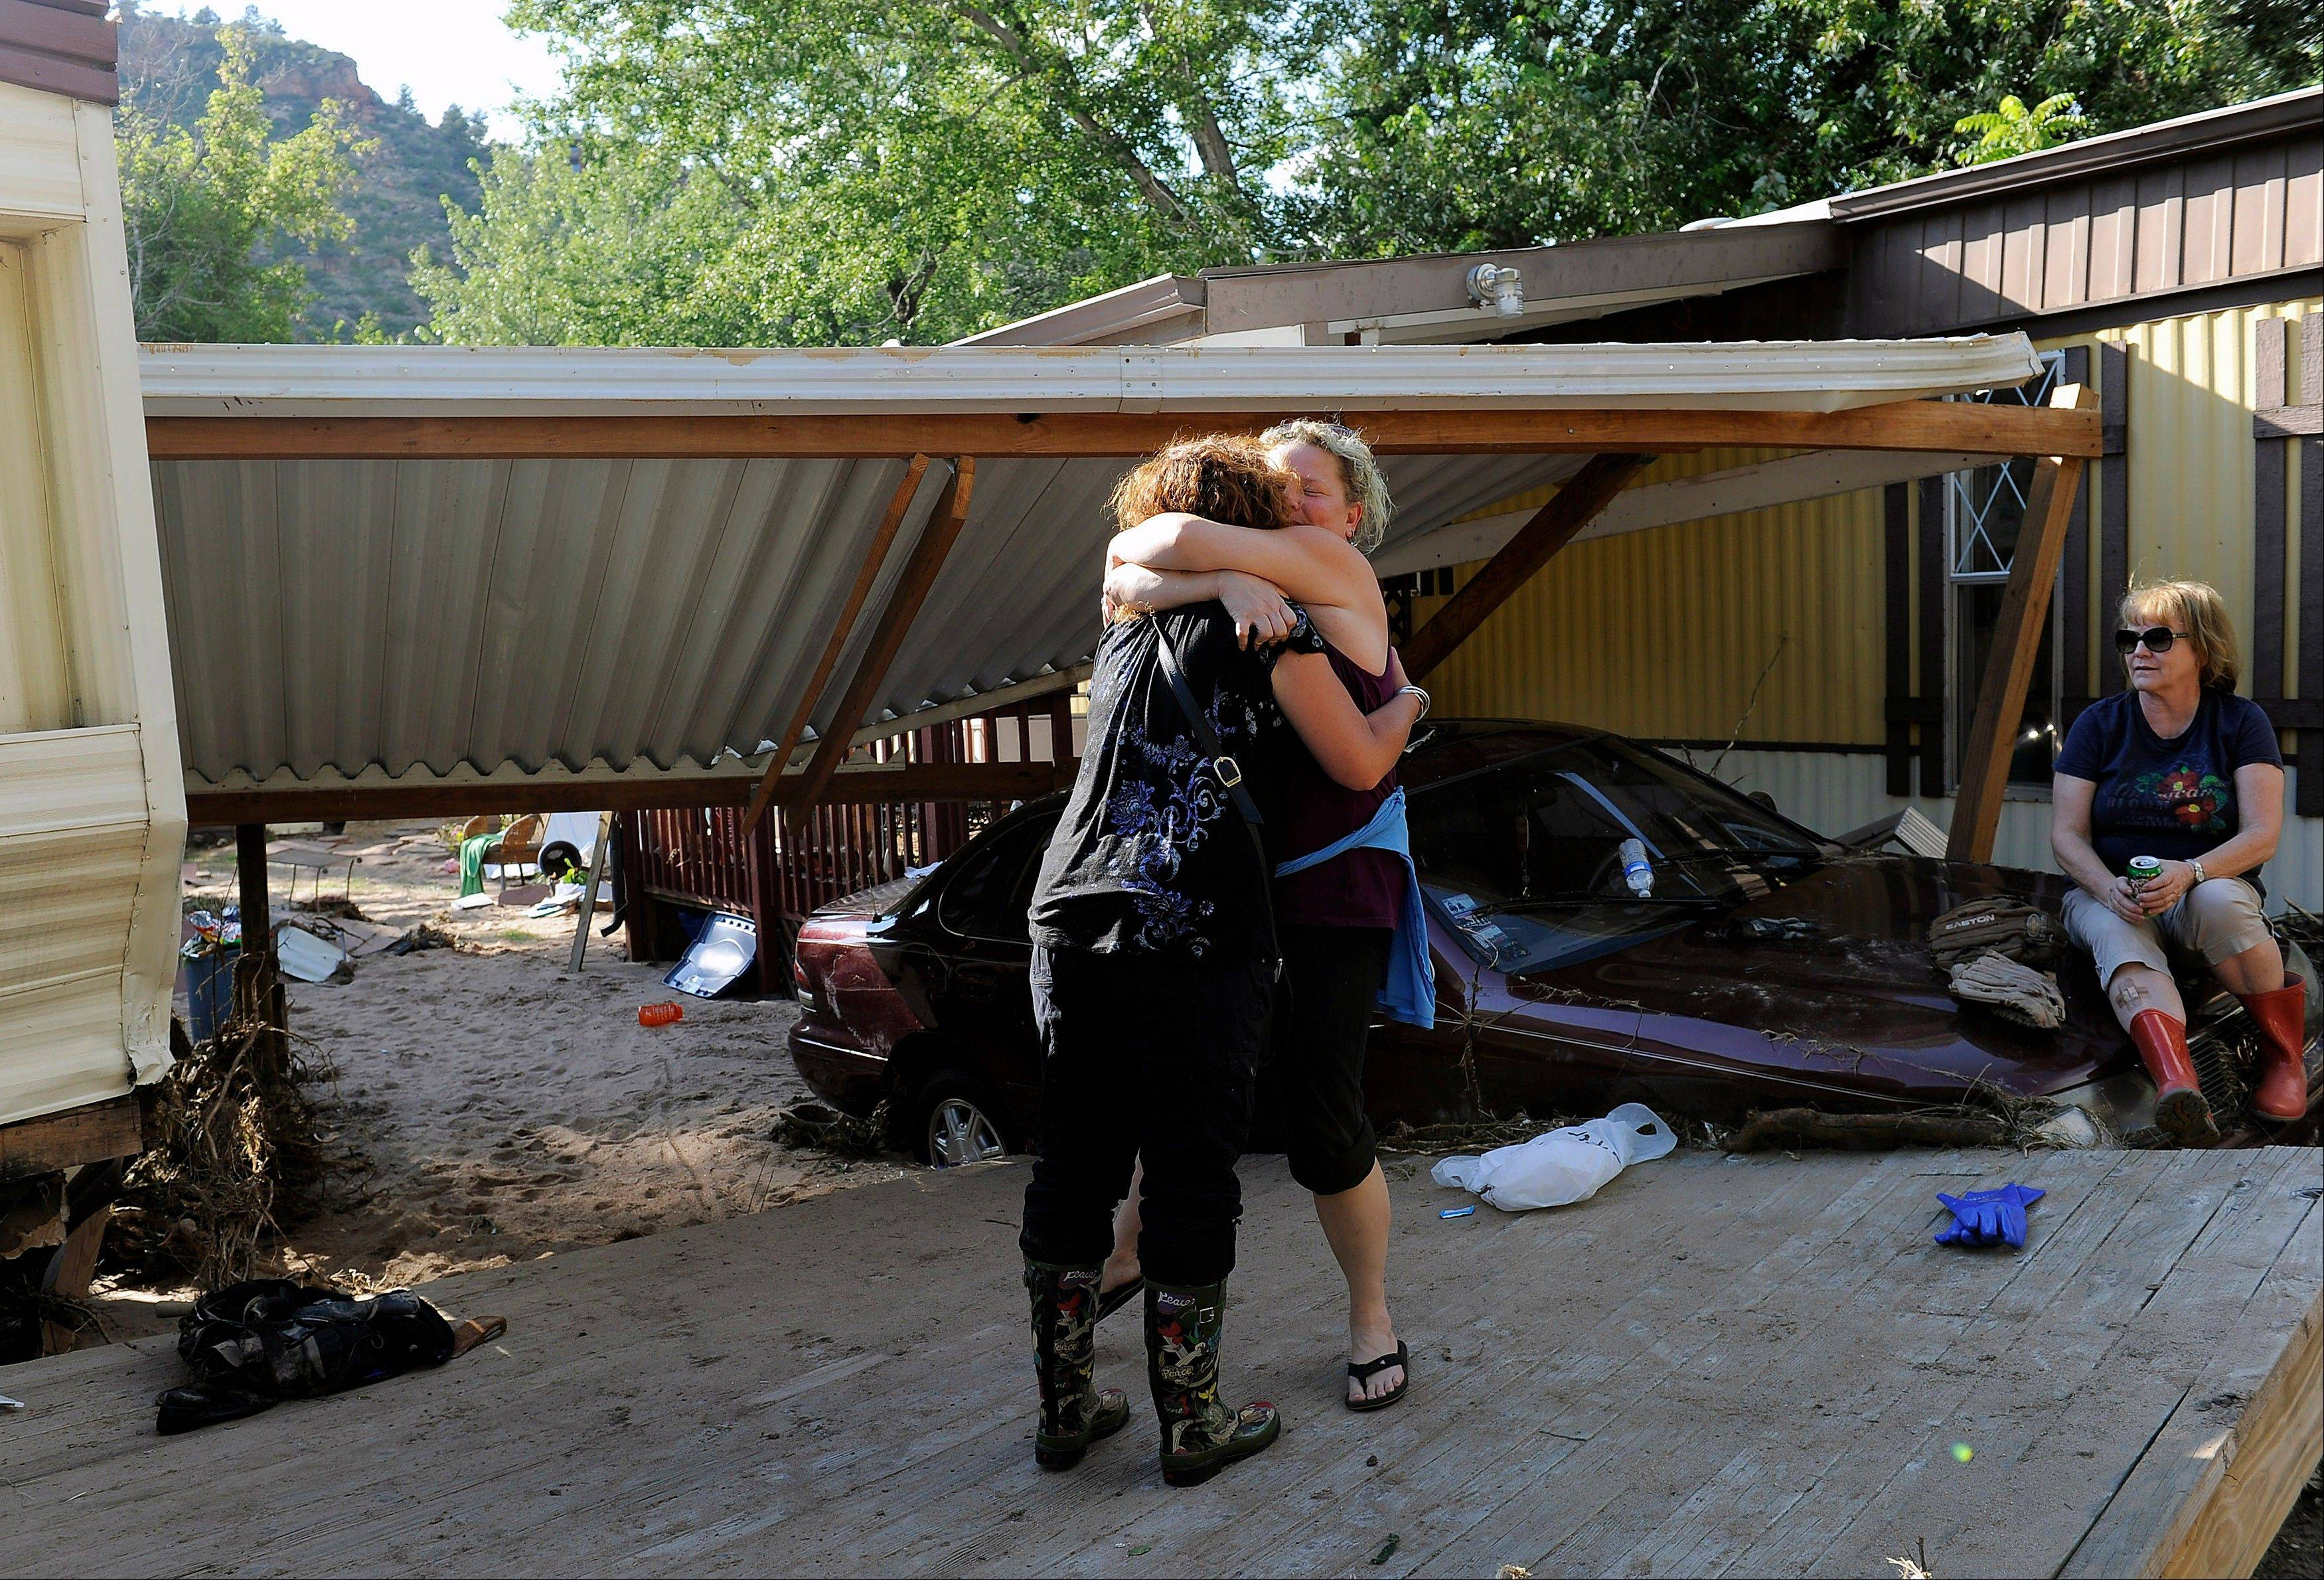 Molly Morton, left, hugs Jenna Brink, center right, outside Brink's flood-damaged trailer at the River Bend Mobile Home Park in Lyons, Colo., as Brink's mother, Christine Brink takes a break from clearing belongings from the trailer on Thursday, Sept. 19, 2013. Hundreds of evacuees were allowed past National Guard roadblocks Thursday to find a scene of tangled power lines, downed utility poles, and mud-caked homes and vehicles.